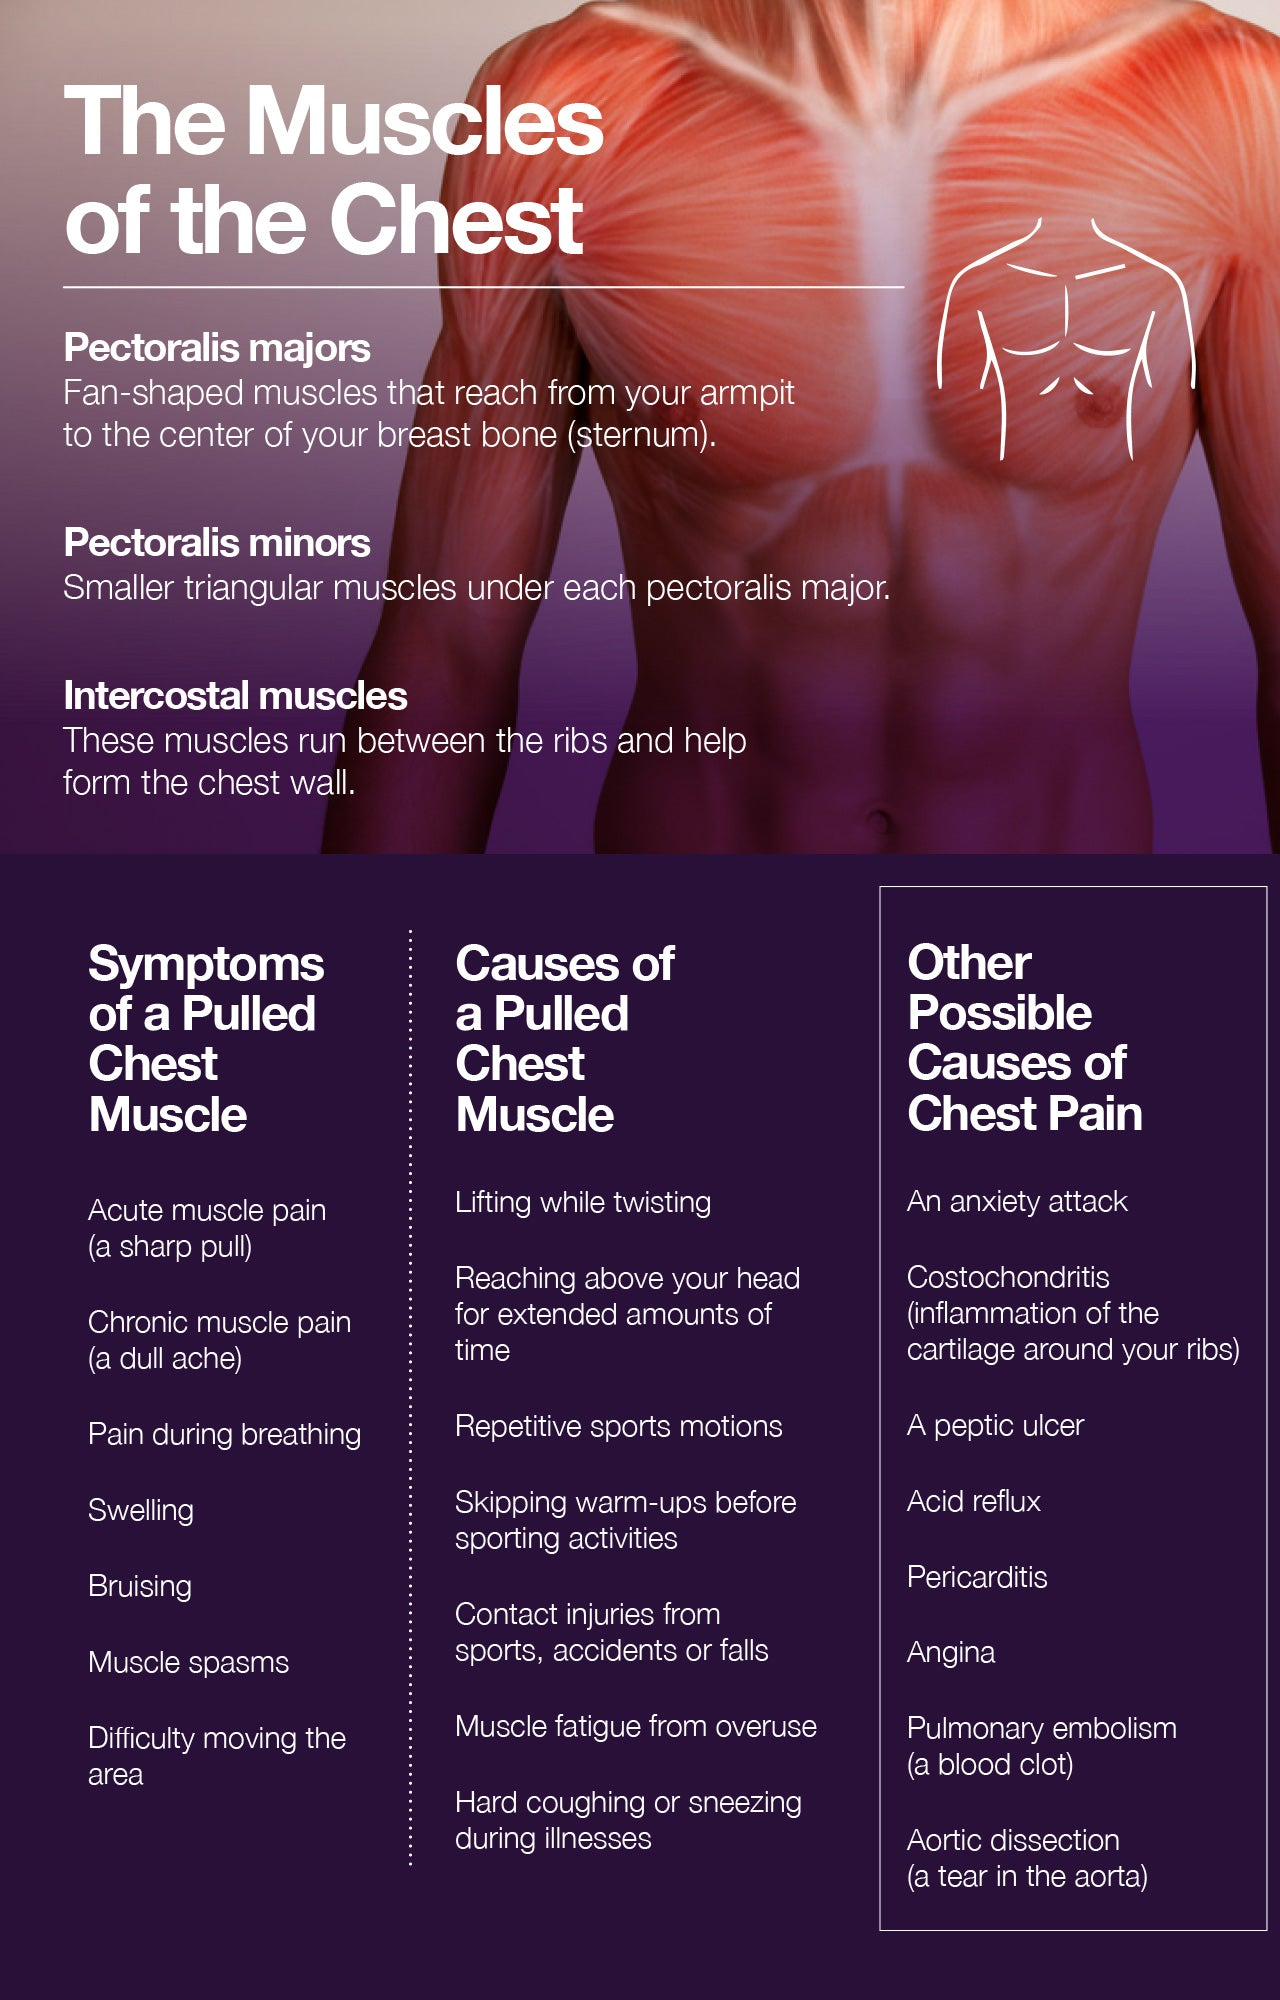 Pulled chest muscle: signs, causes, and treatment.